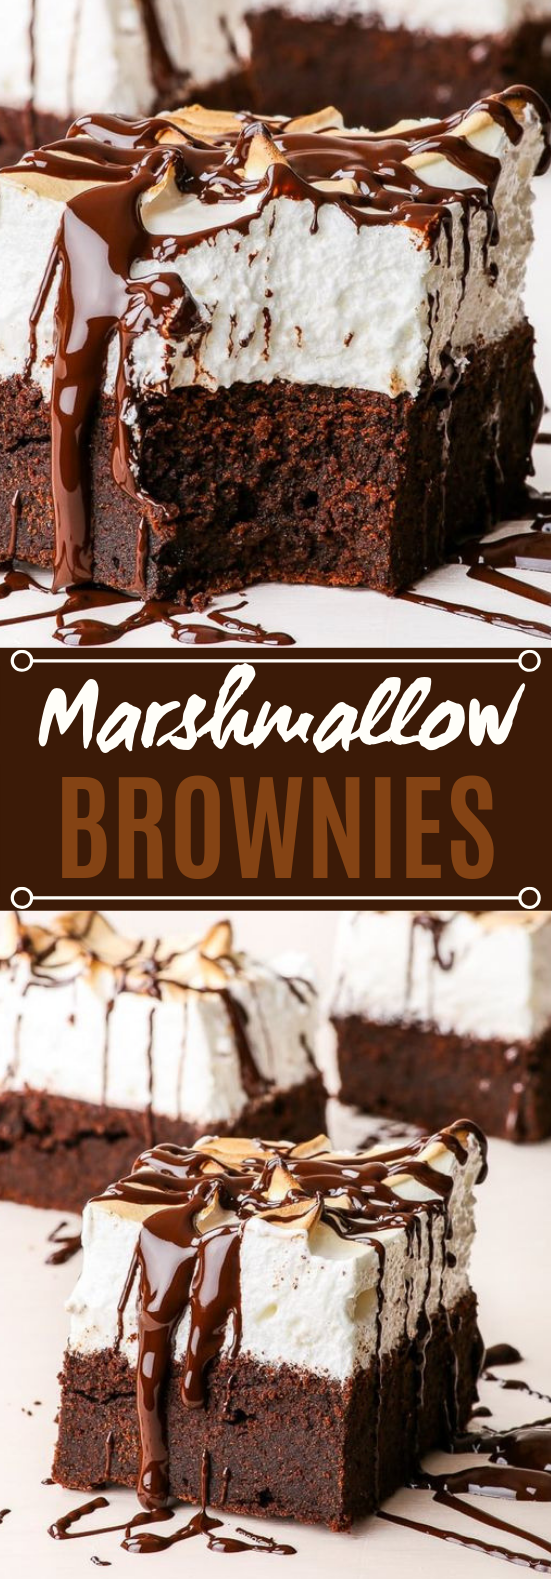 Marshmallow Brownies #chocolate #desserts